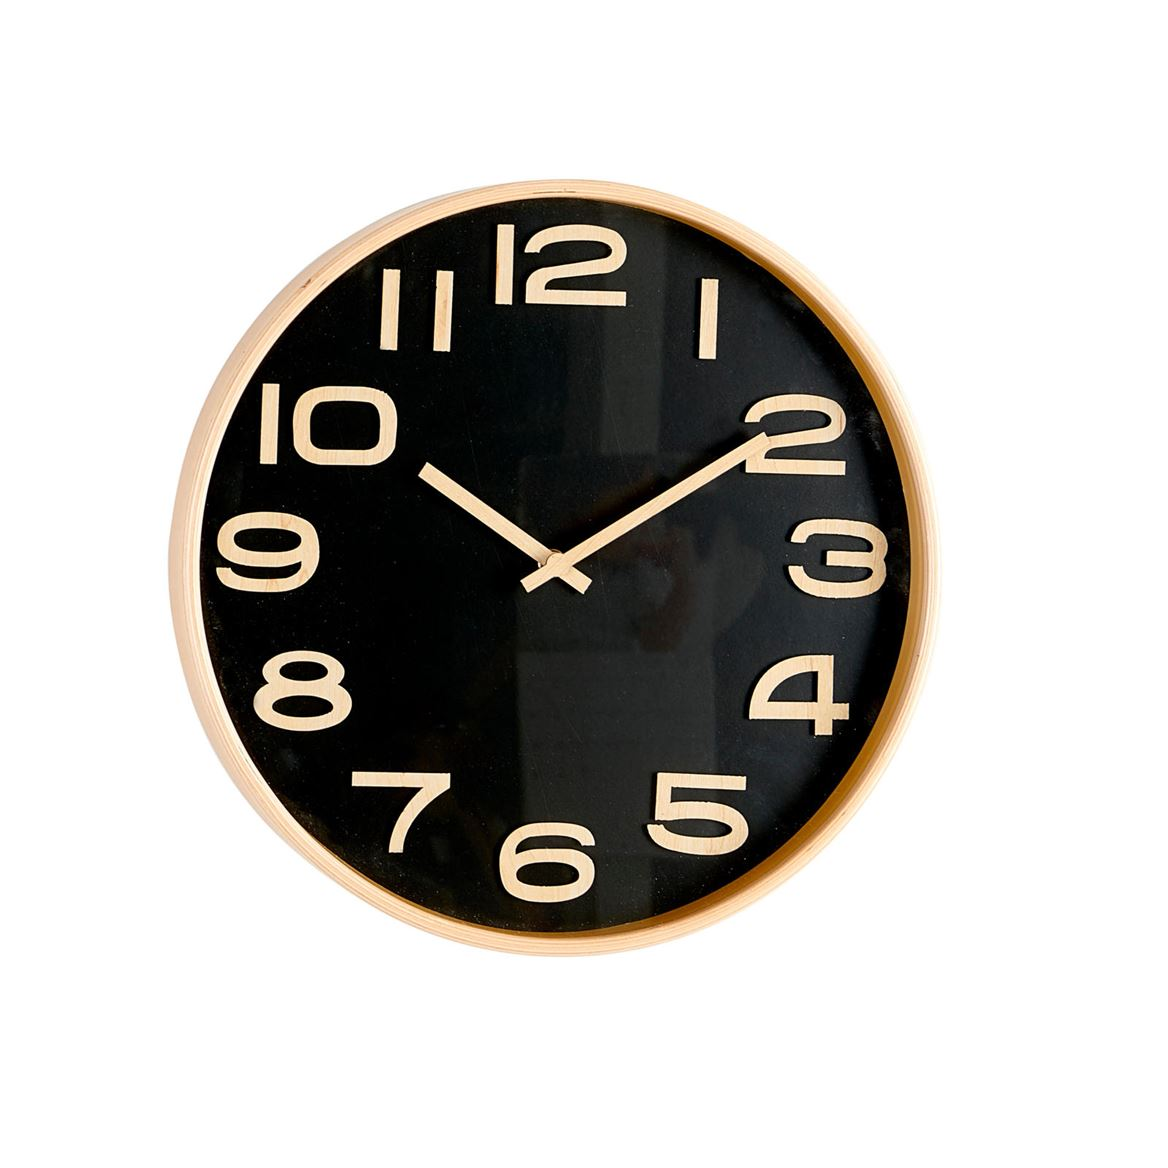 PLYWOOD Reloj de pared negro, natural P 4.5 cm; Ø 31 cm_plywood-reloj-de-pared-negro,-natural-p-4-5-cm;-ø-31-cm